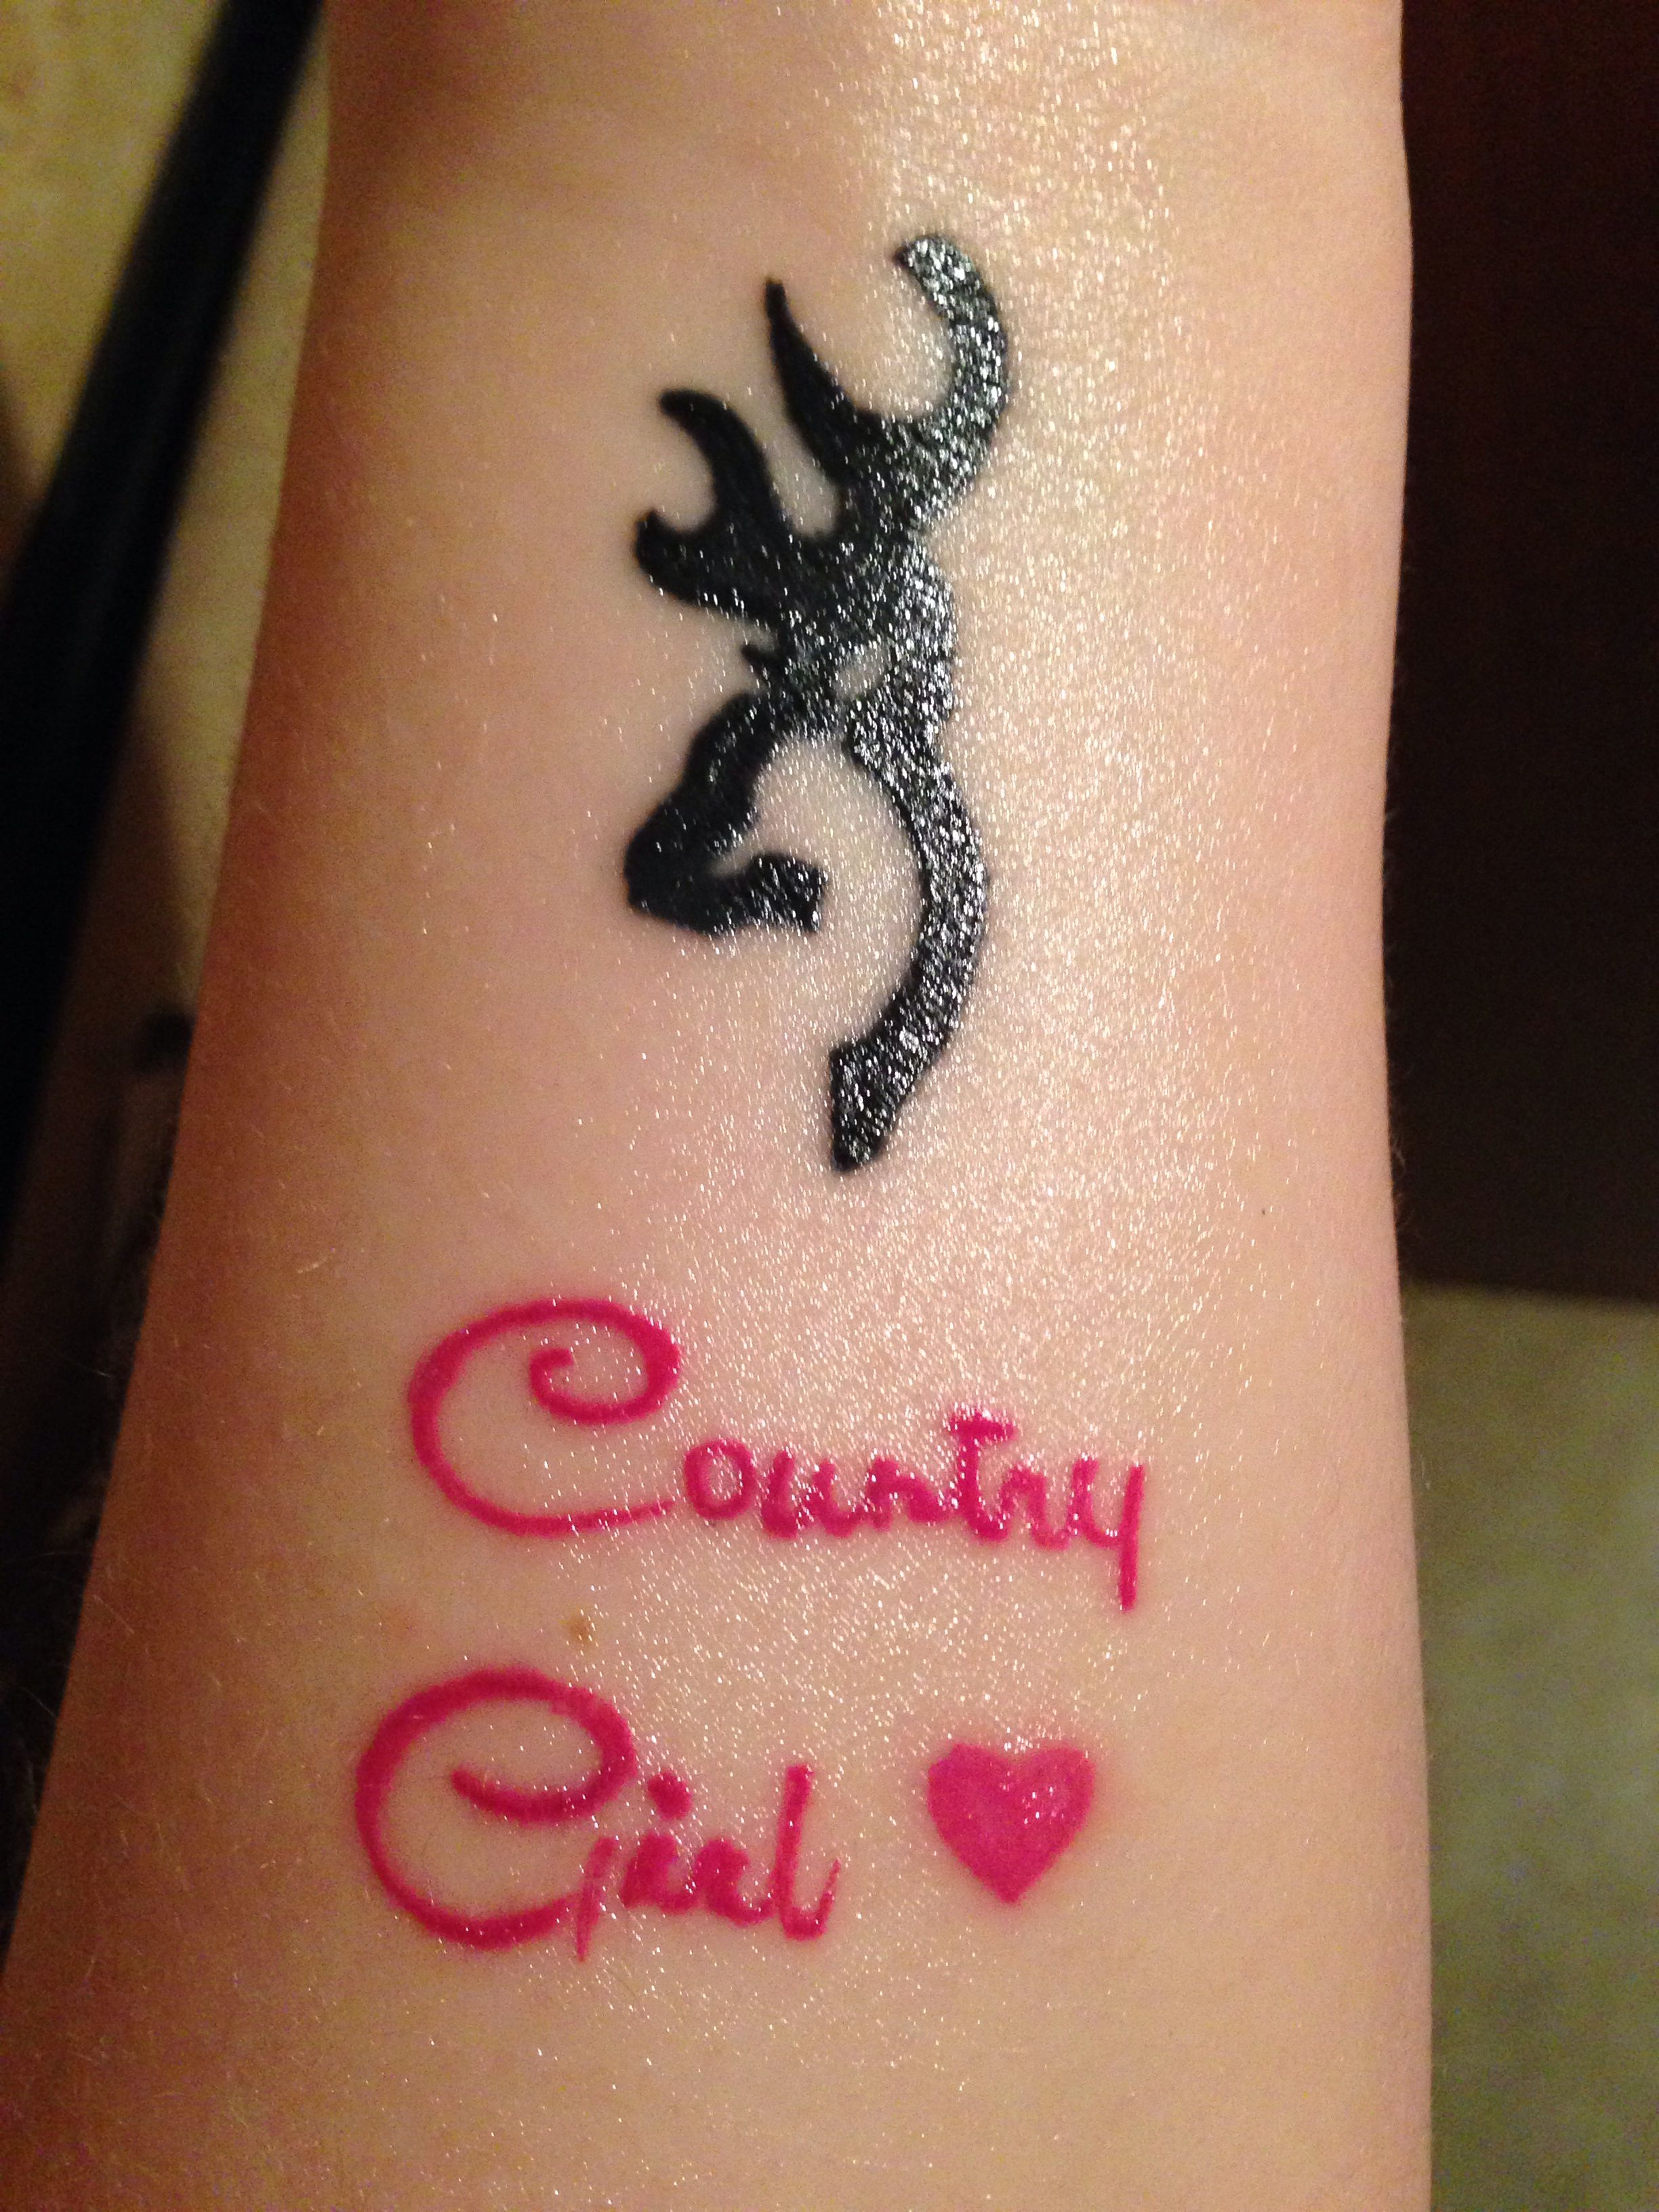 my wrist tattoo browning symbol with country girl underneath it tattoos pinterest. Black Bedroom Furniture Sets. Home Design Ideas